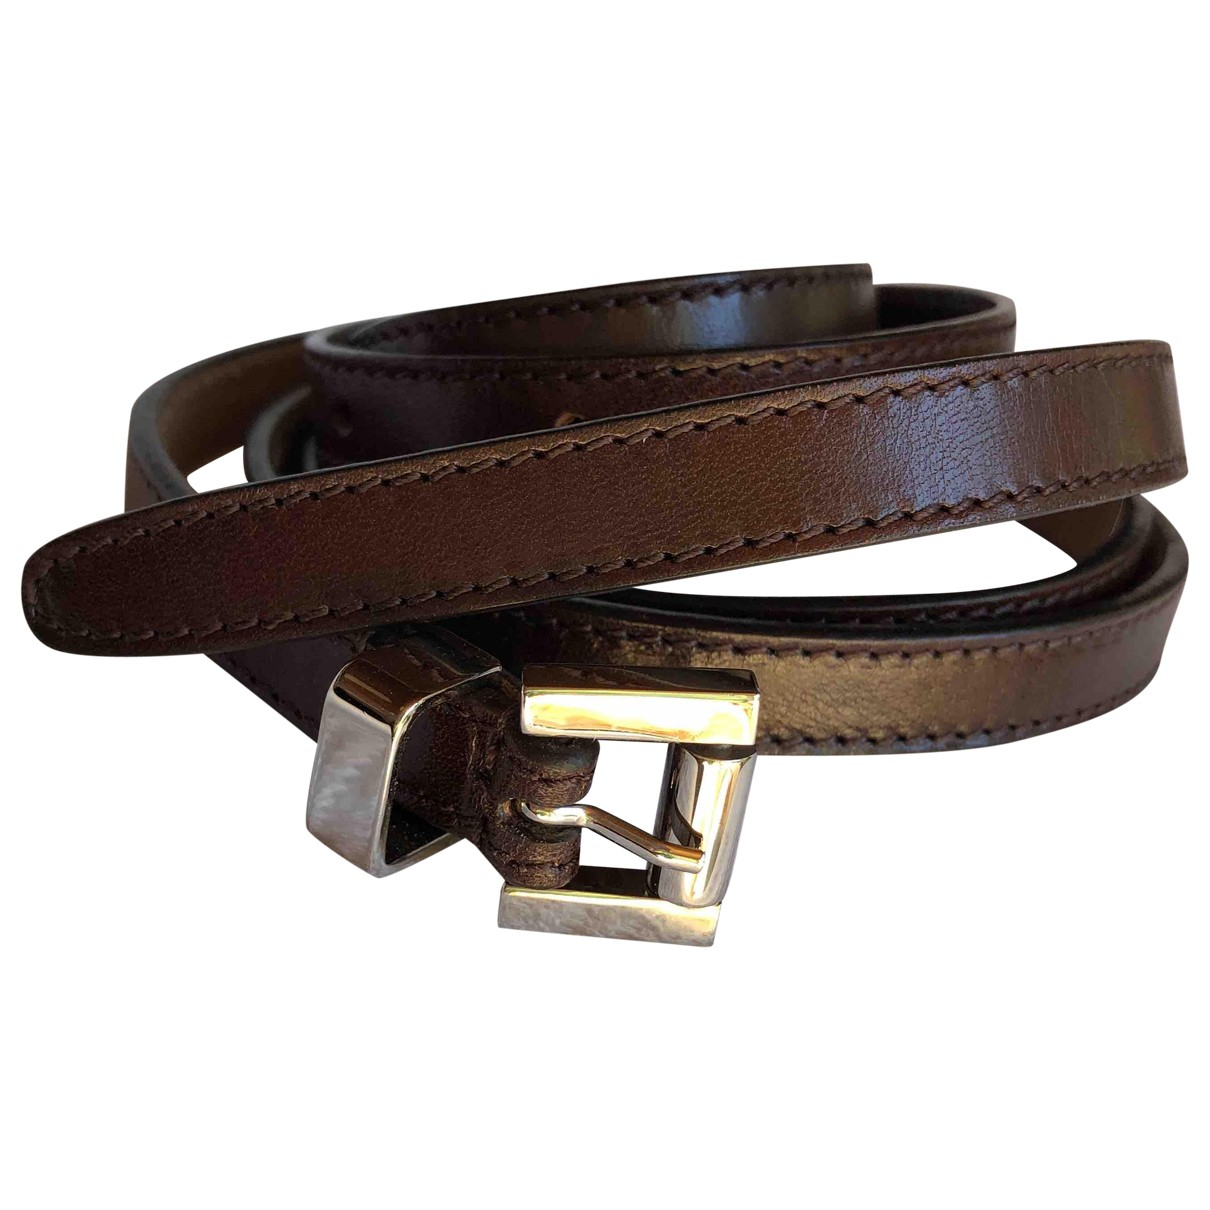 Michael Kors \N Brown Leather belt for Women L International